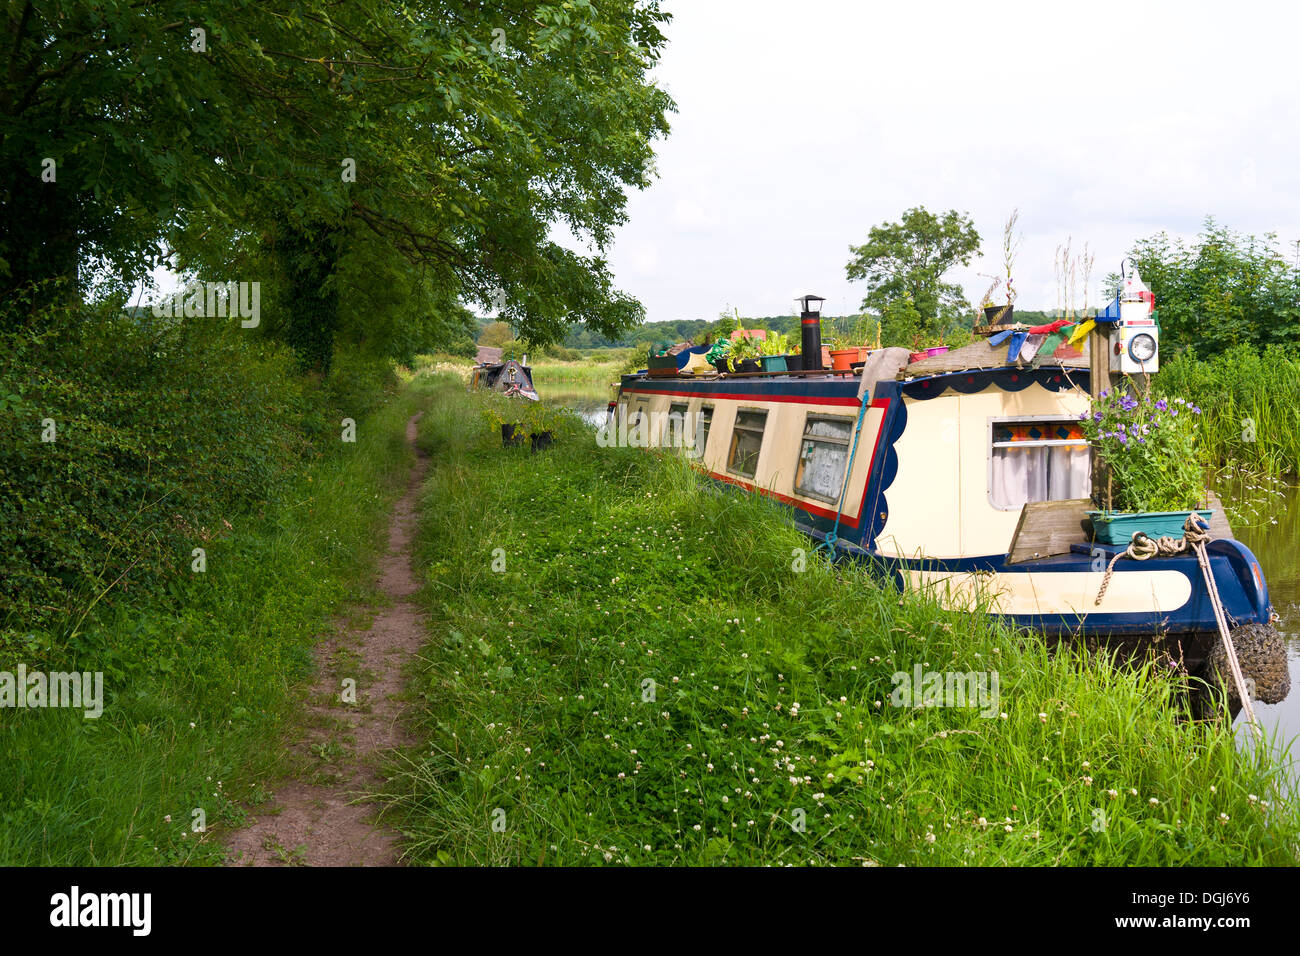 Narrowboats tied up on the Ashby Canal in Leicestershire. - Stock Image